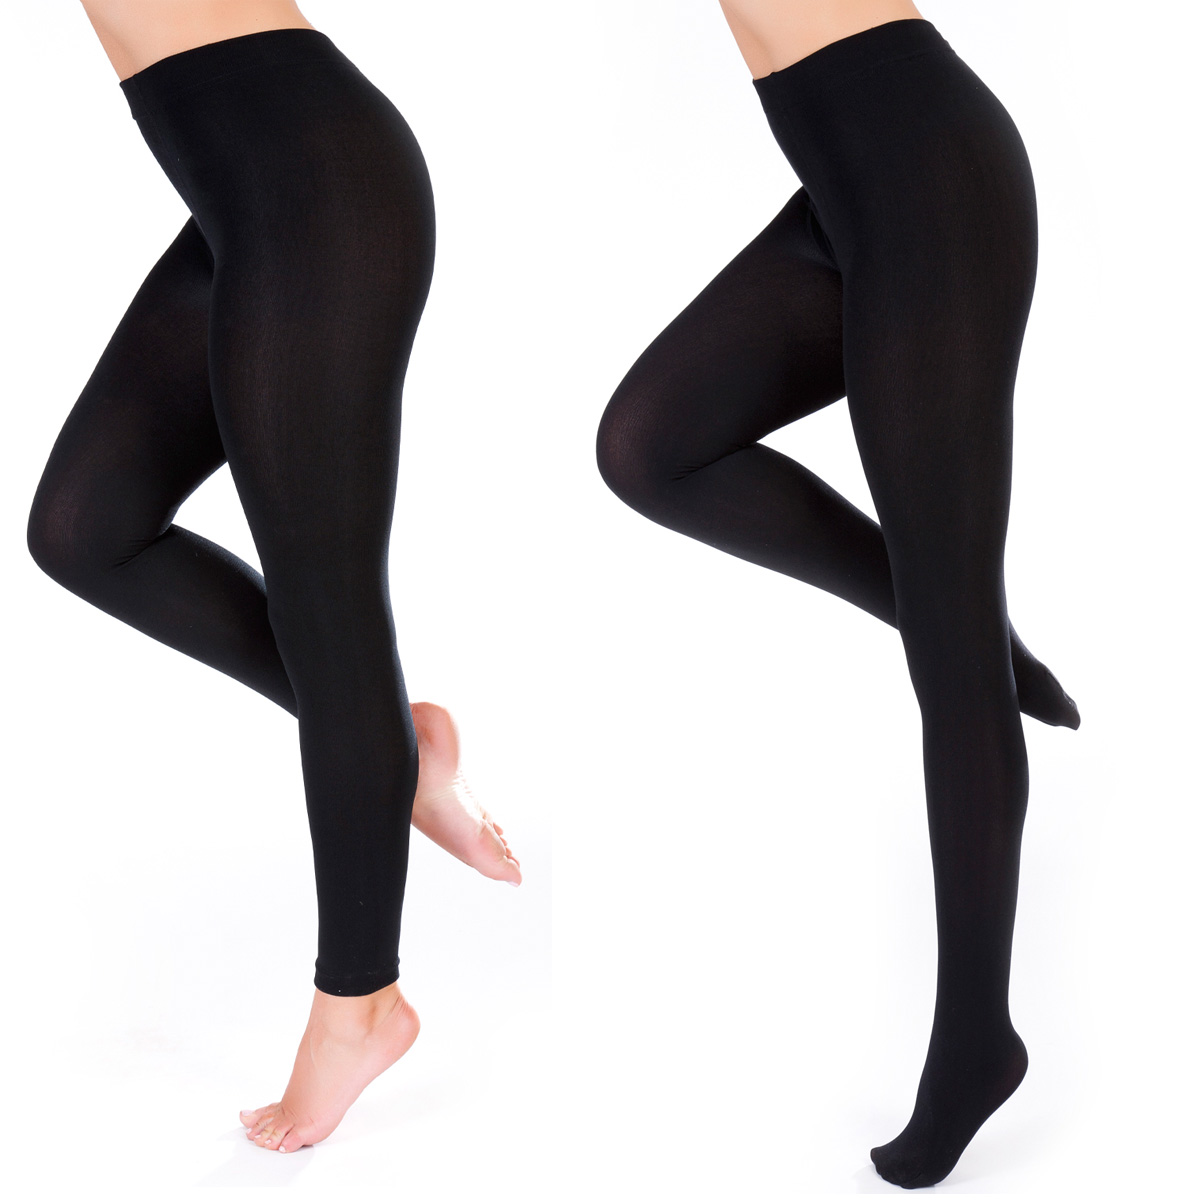 Leggings are garments that are skin tight and cover the legs, worn by men and women; jeggings-of two types; one is similar to legging material make and resembles denim, have fake pockets and belt loops, the other is a cross between legging material and denim, 'denim jeggings' are merely made of up denim fabric but have the elasticity of.